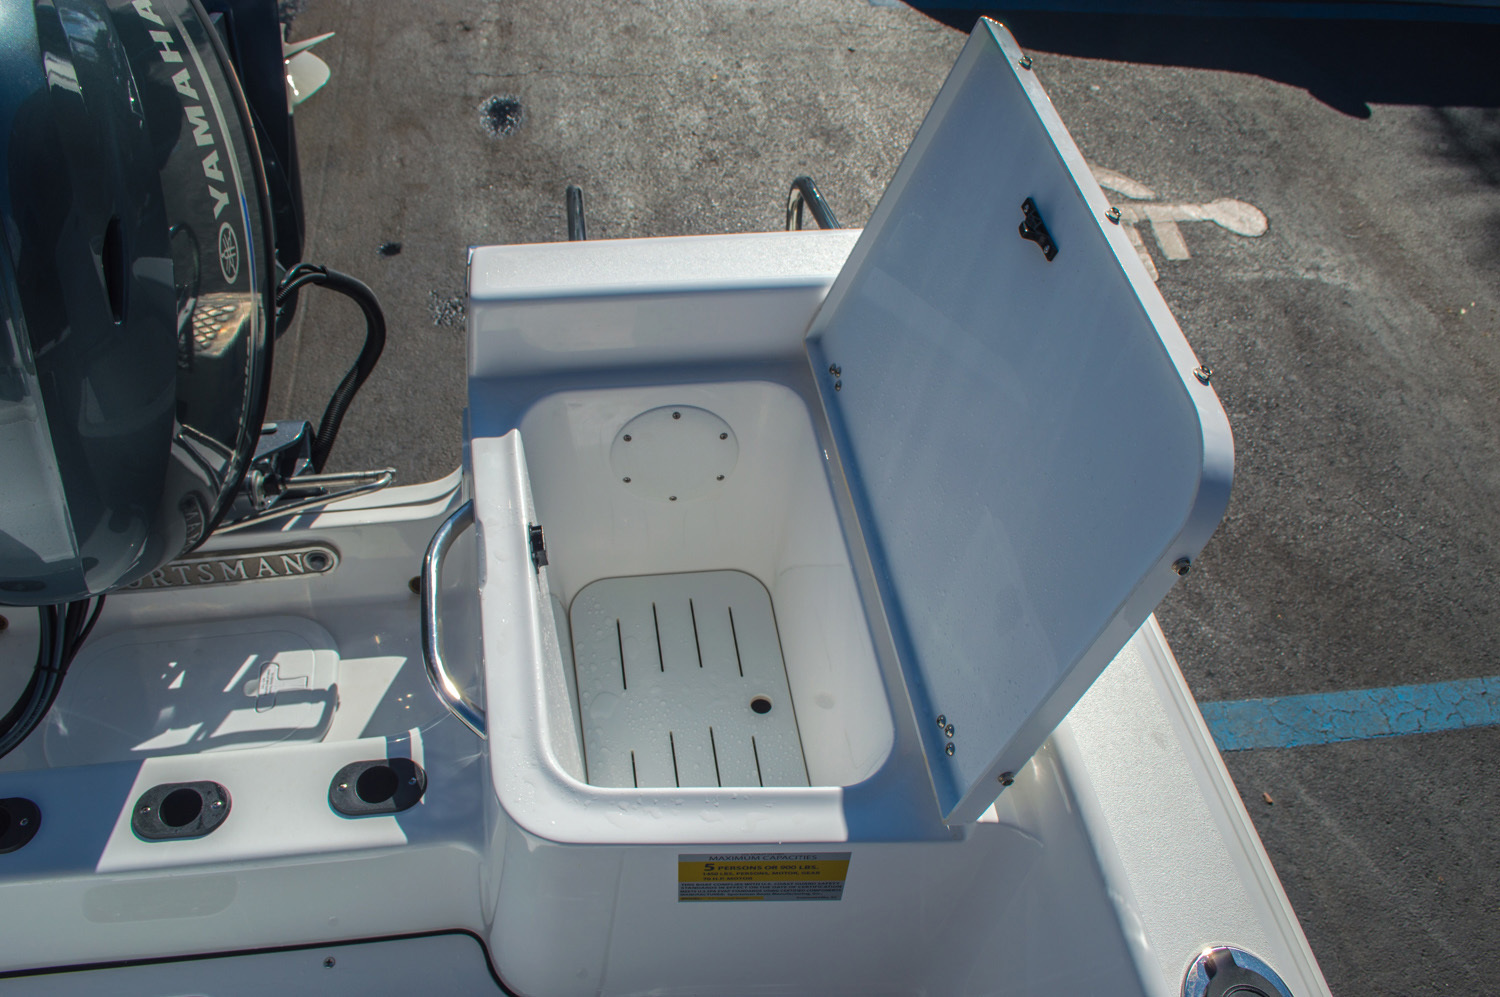 Thumbnail 16 for New 2016 Sportsman 17 Island Reef boat for sale in West Palm Beach, FL